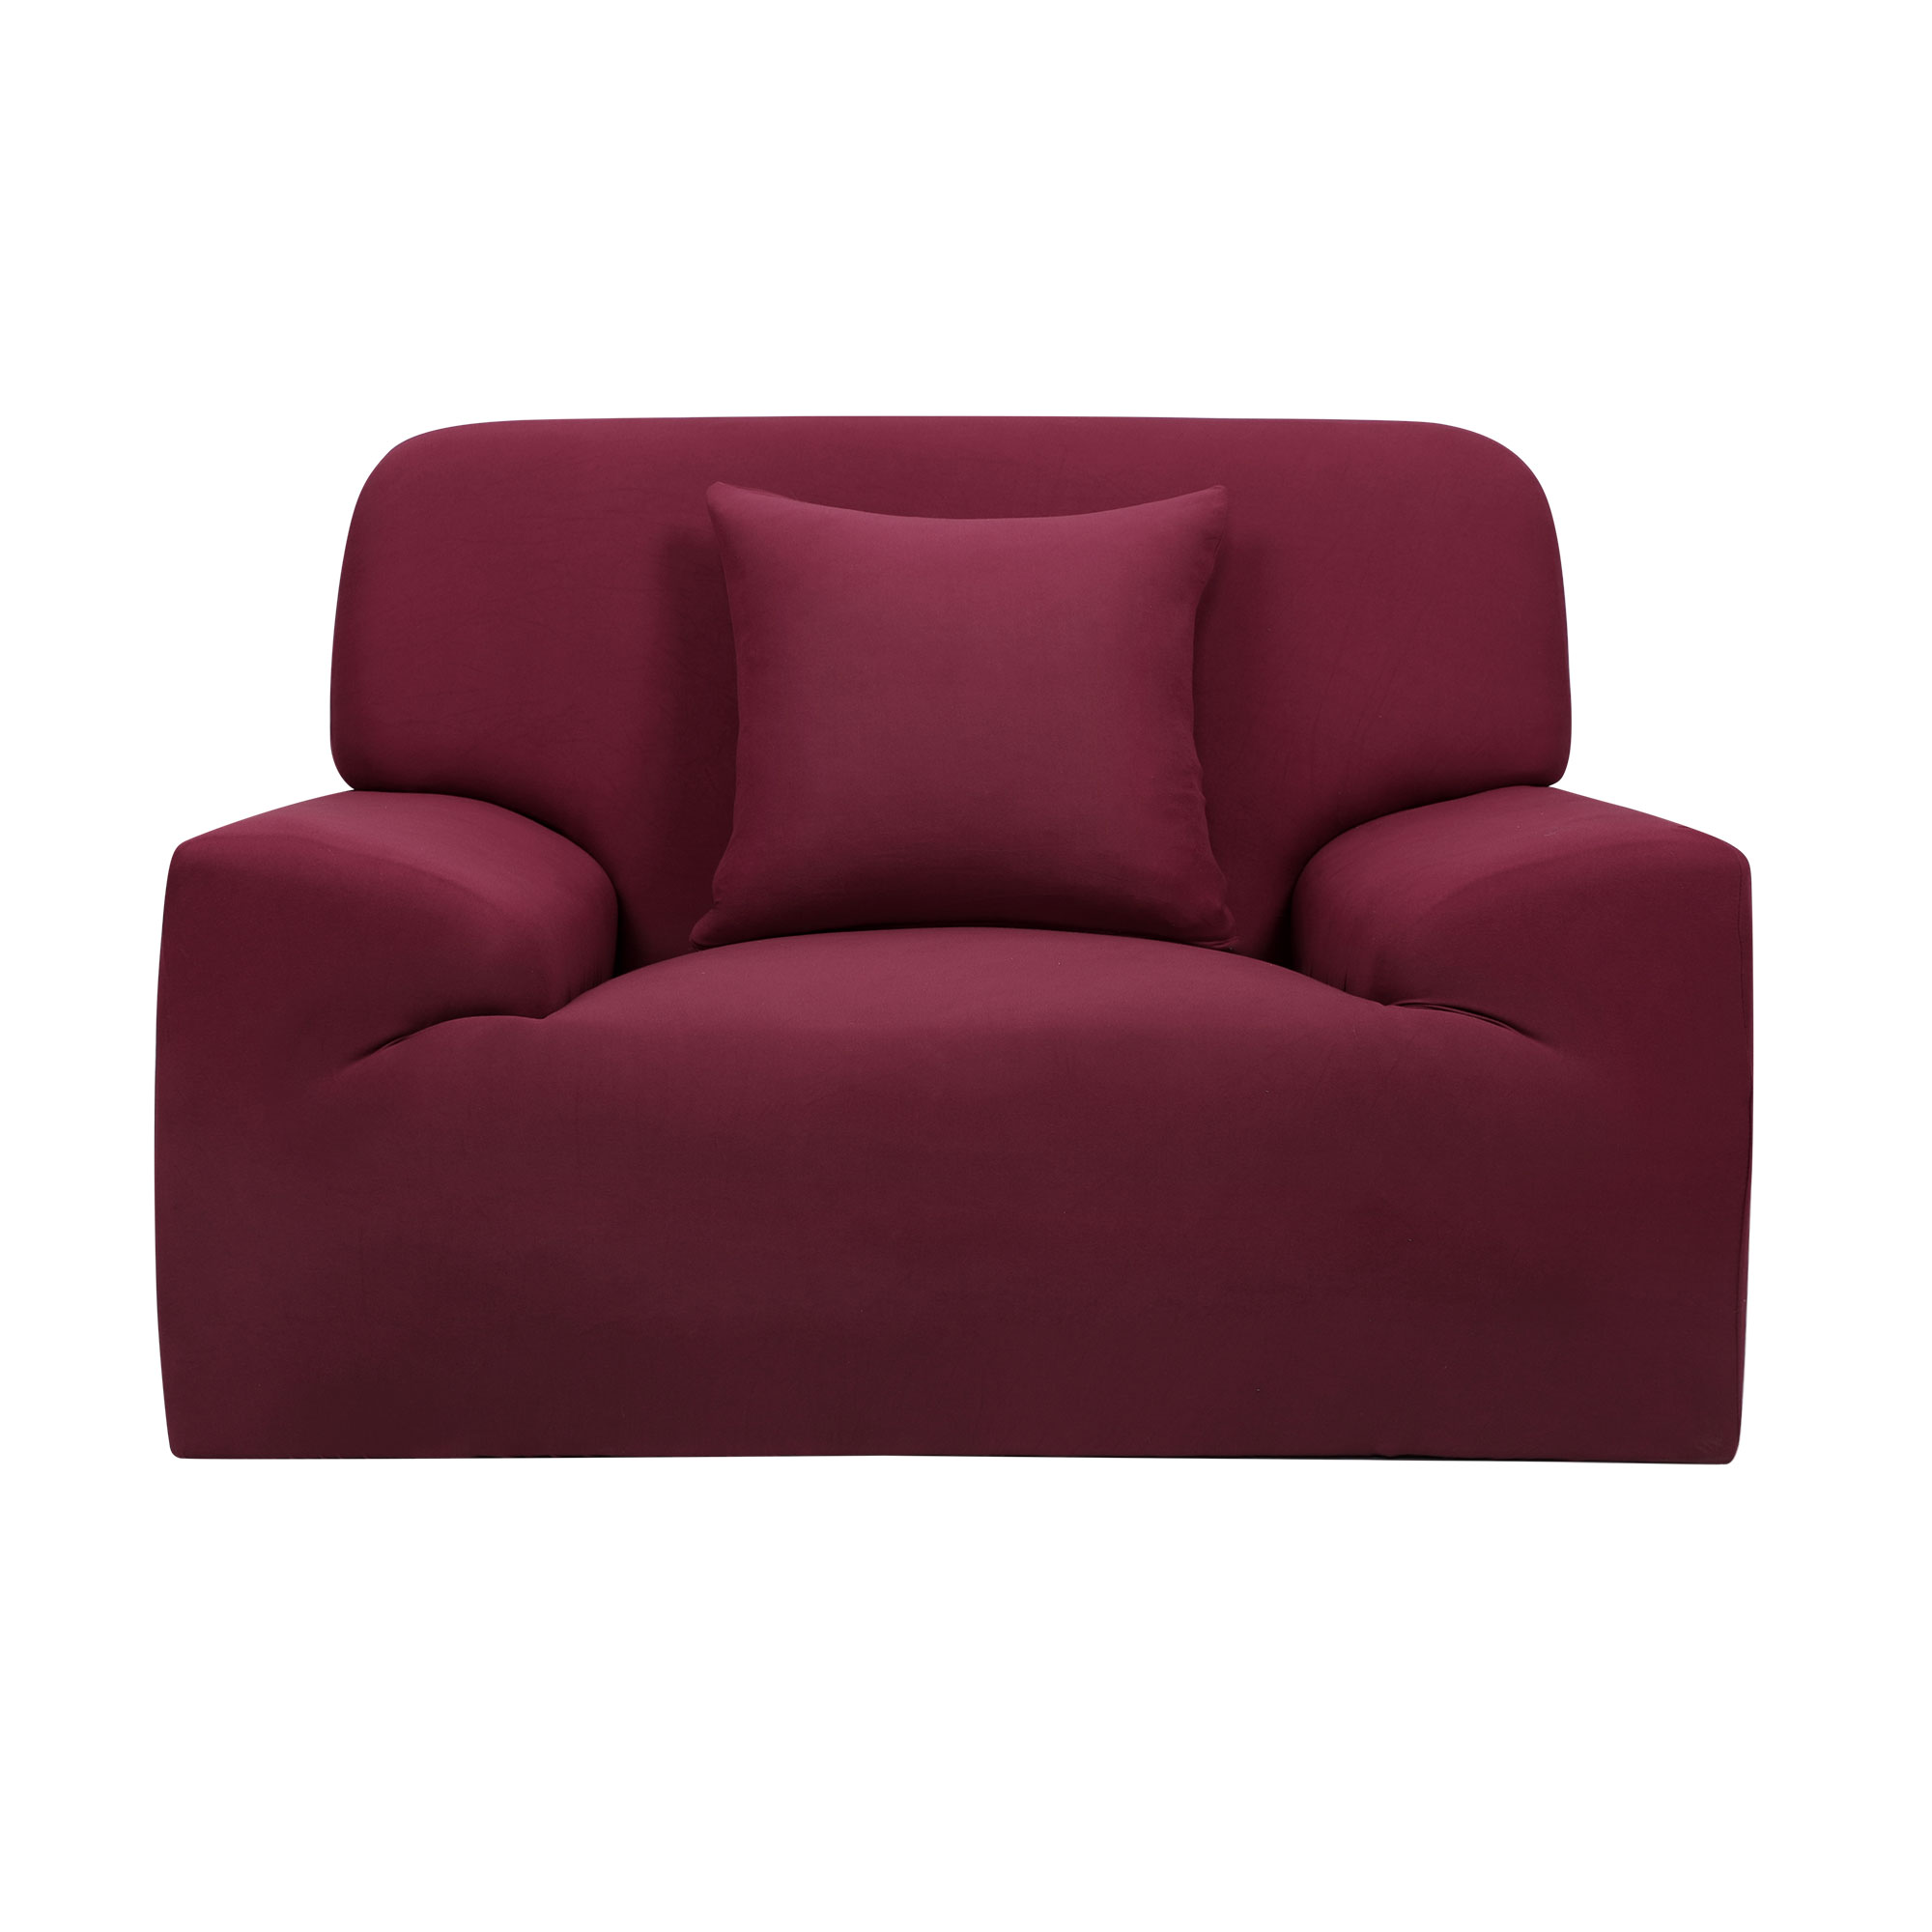 Home Chair Sofa Couch Stretch Protector Cover Slipcover Burgundy 35''-55''